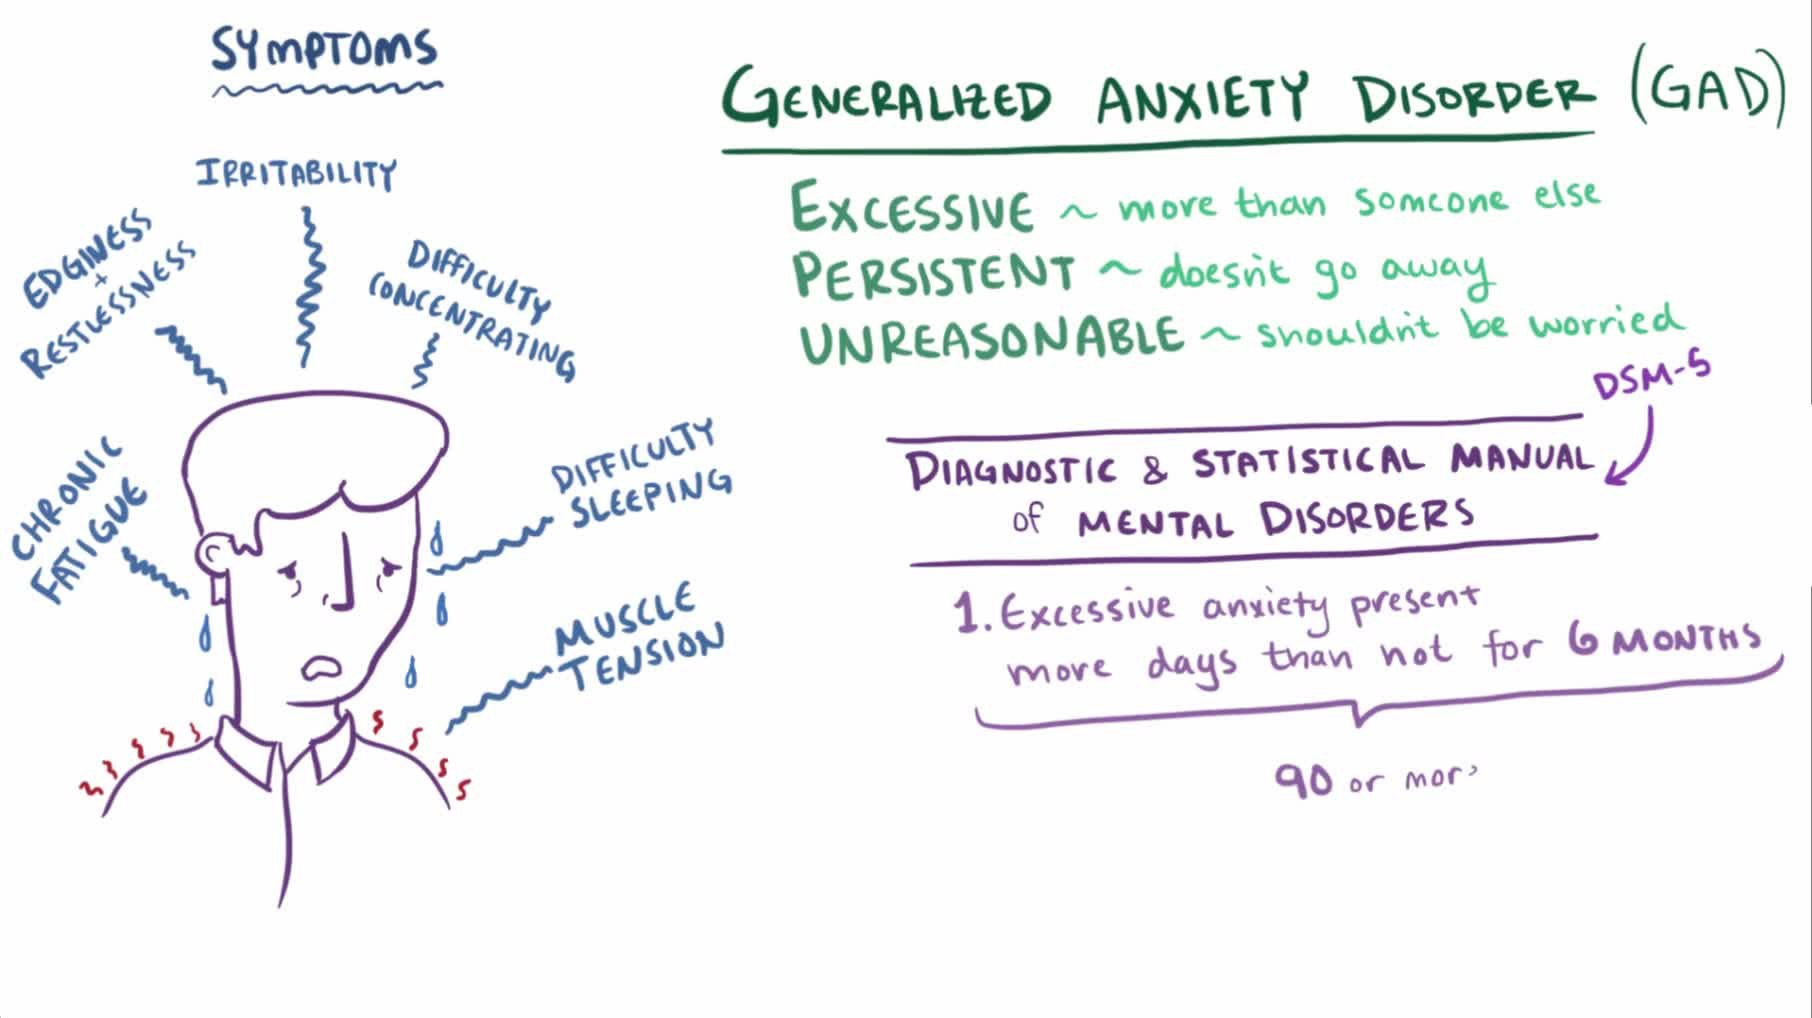 case study 5 generalized anxiety disorder Individuals with gad have high functional impairment (5, 6) and low quality of life  (7)  direct current stimulation for generalized anxiety disorder: a case study.